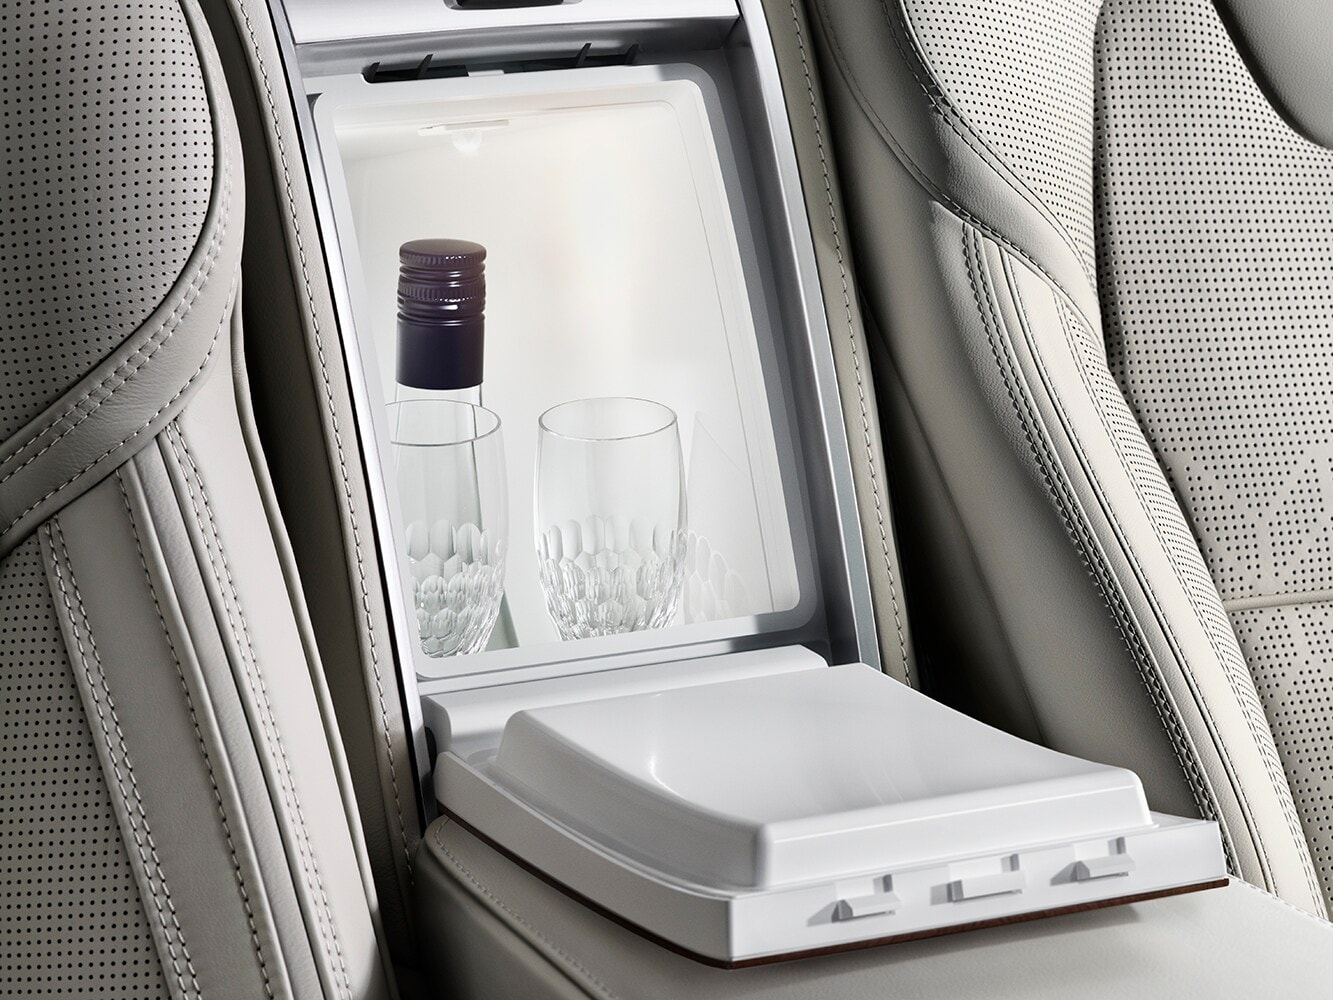 Close-up of the built-in drinks cooler and pair of Orrefors crystal glasses exclusive to the Volvo XC90 Excellence